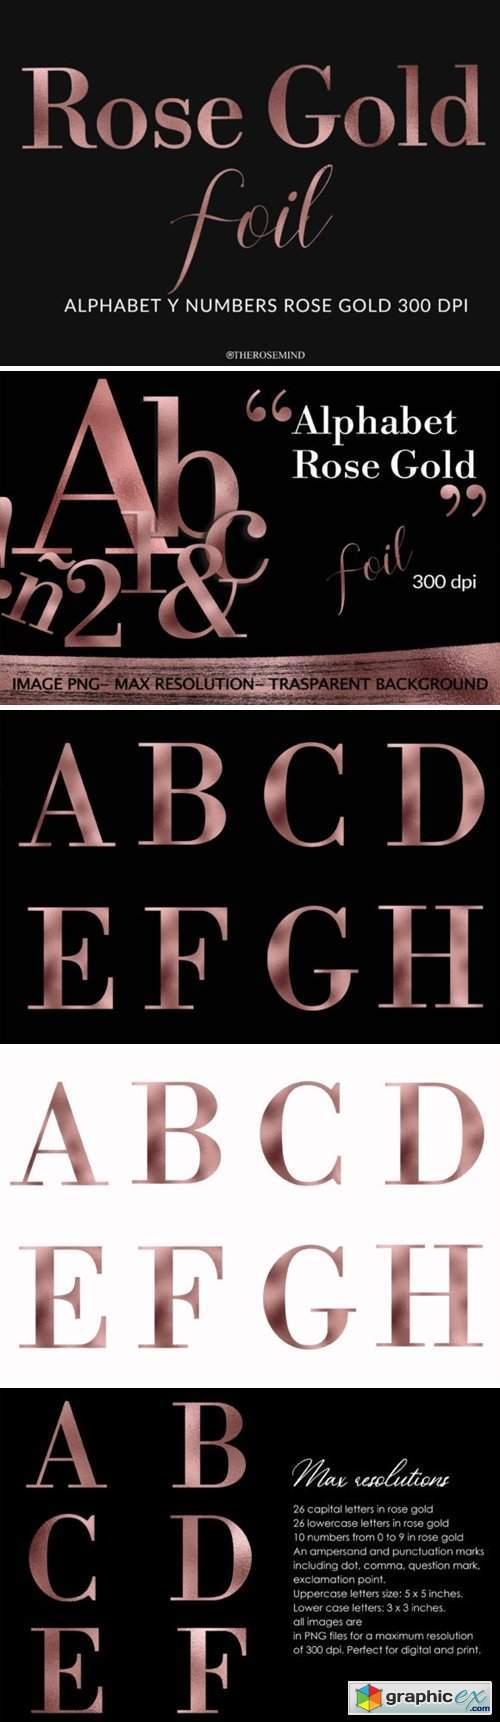 Alphabet and Numbers Rose Gold Foil